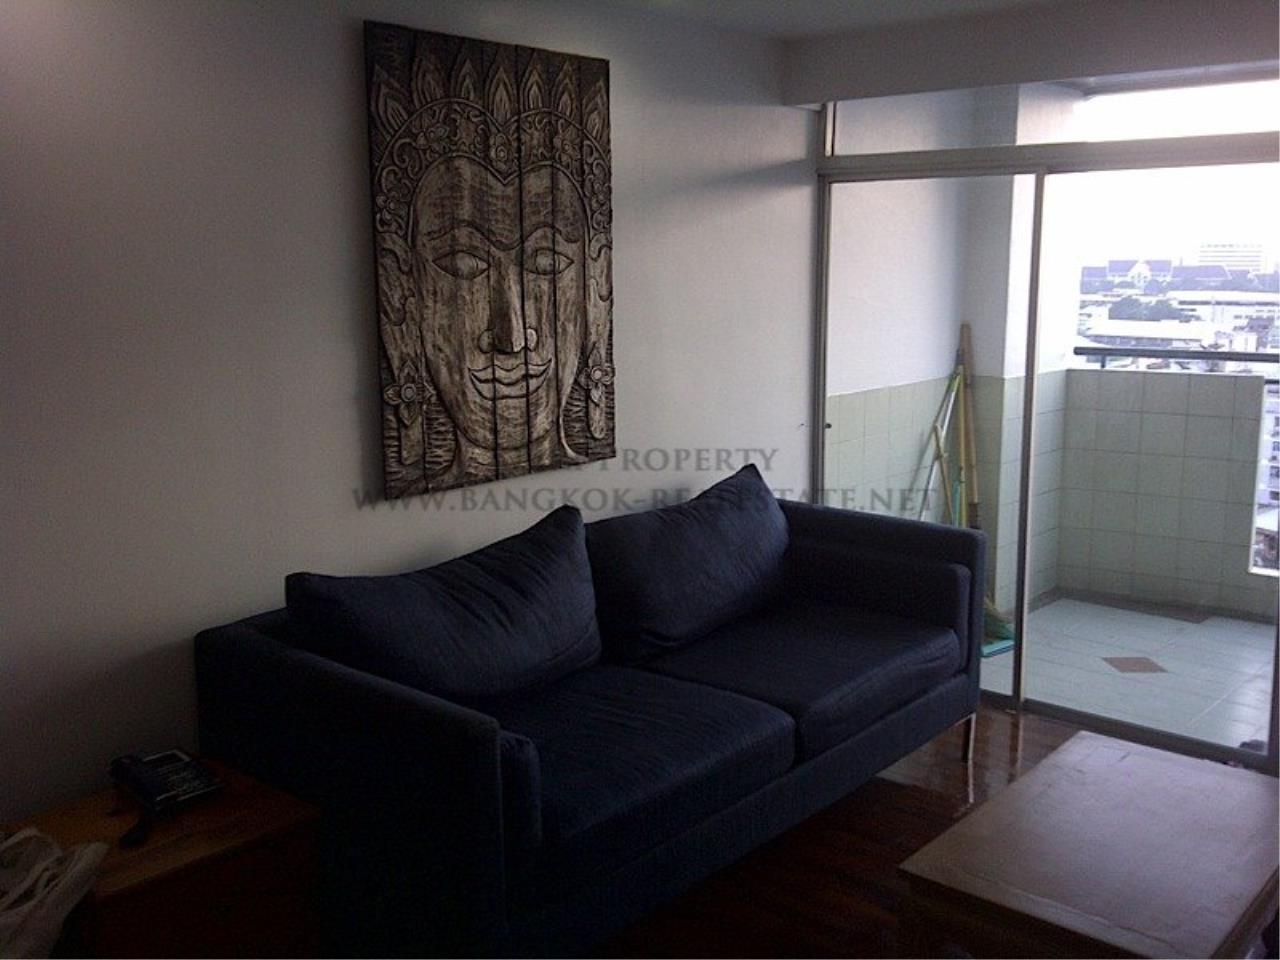 Piri Property Agency's One Bedroom Unit - Monterey Place - Recently Renovated 2